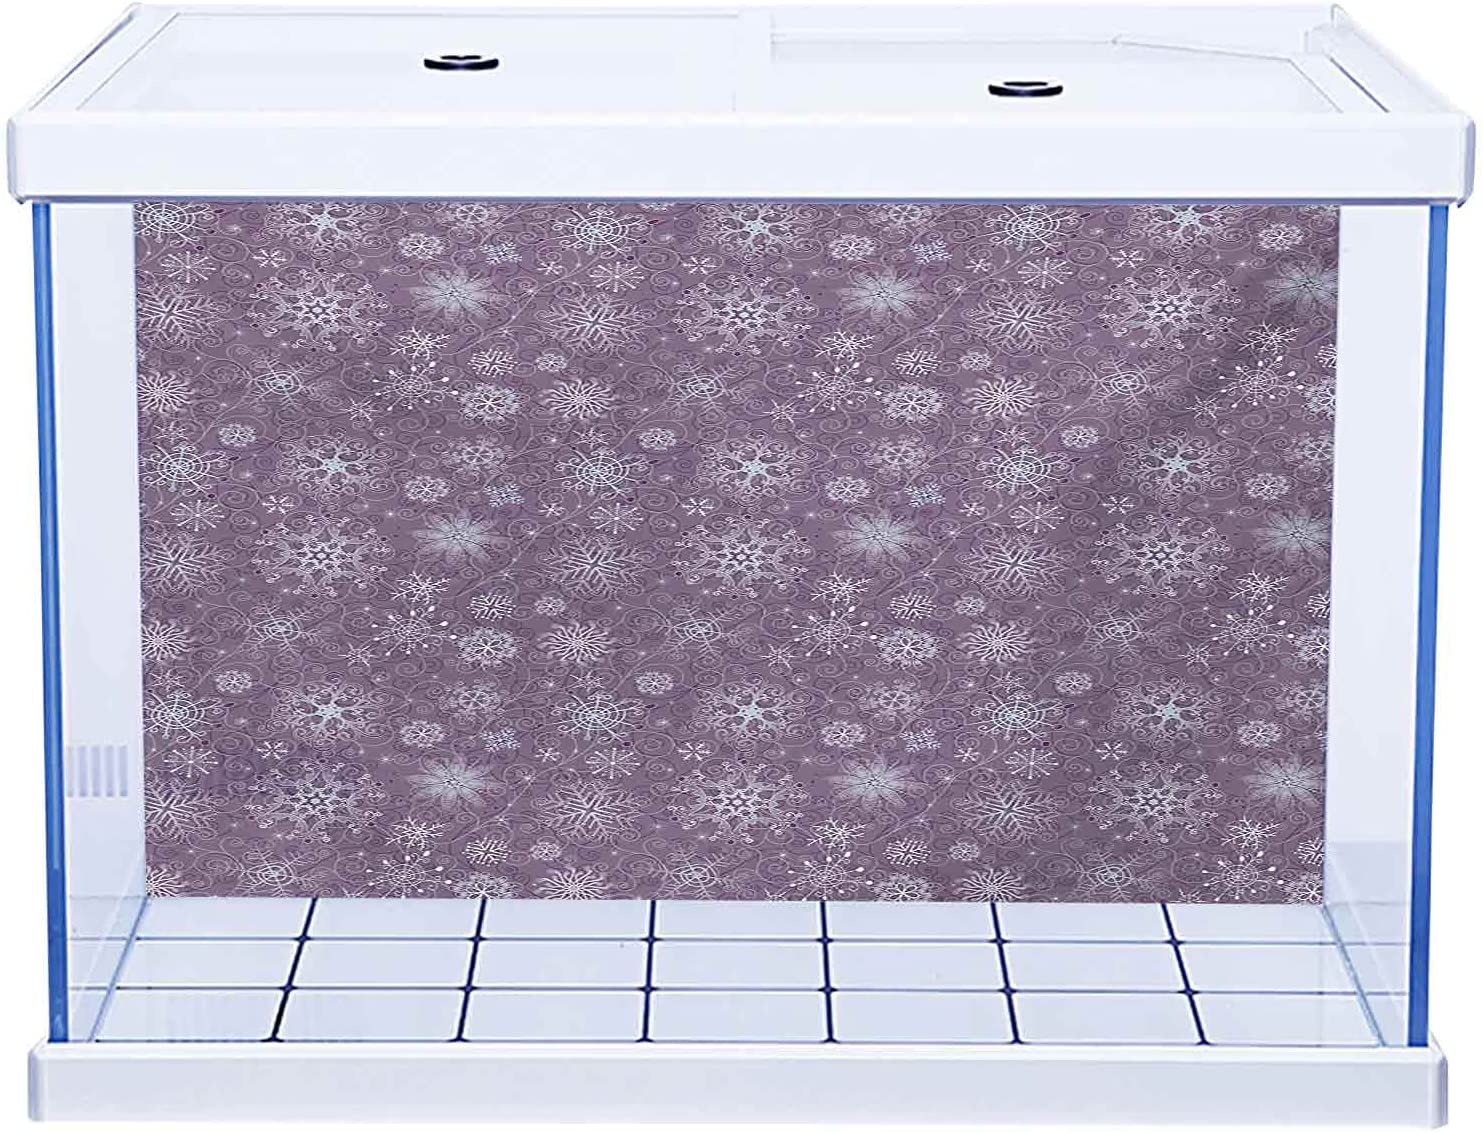 favorite Fish Tank Sticker Max 70% OFF Background Snowflake Themed Floral A Christmas